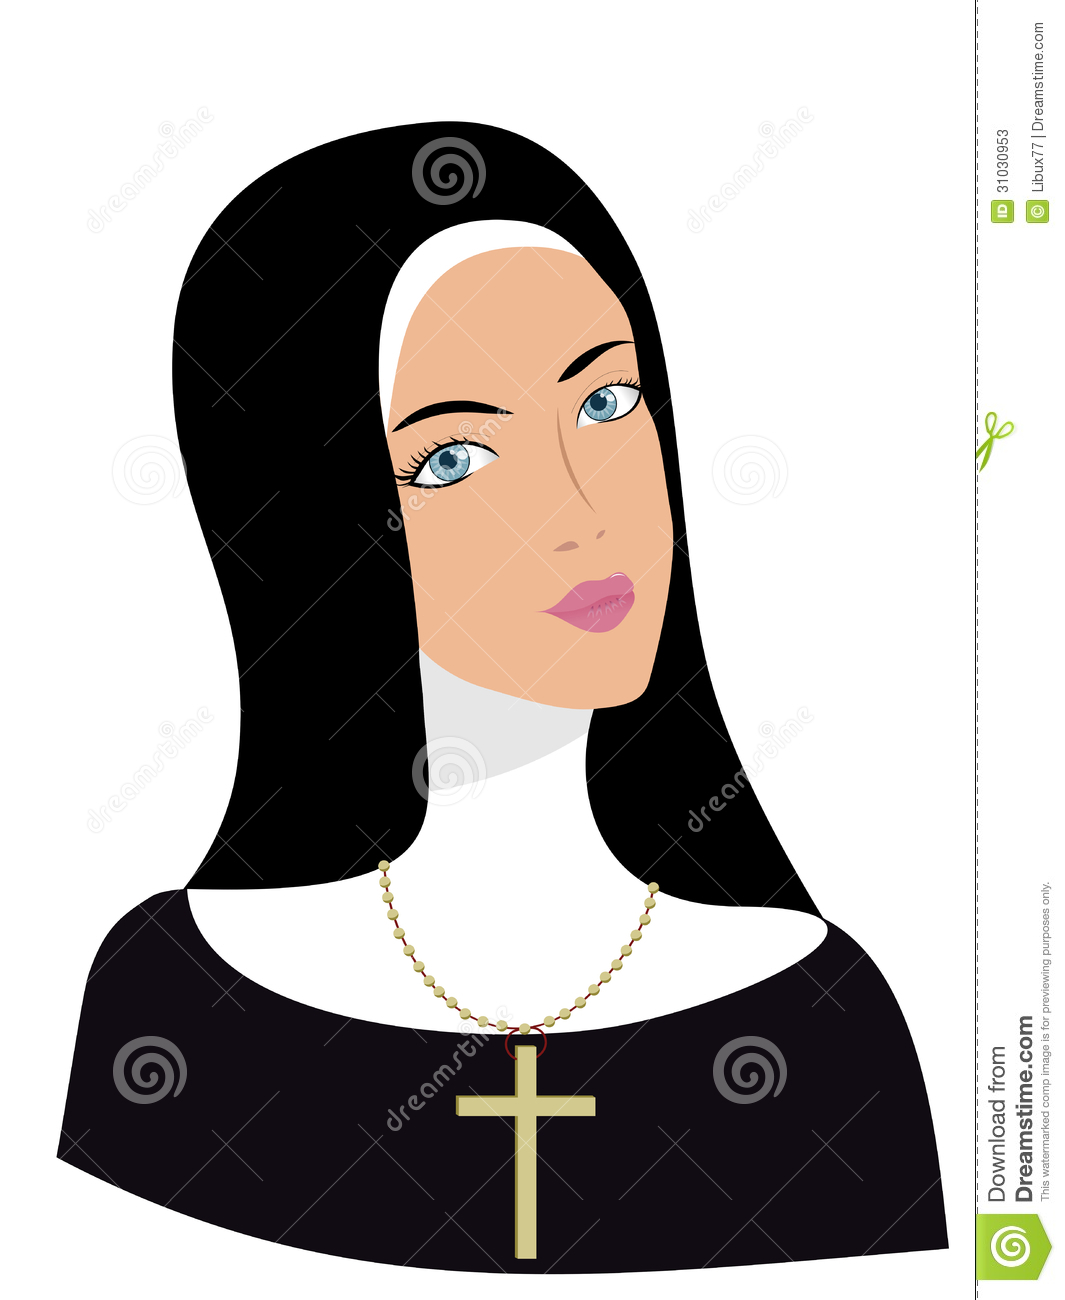 Nun clipart #8, Download drawings